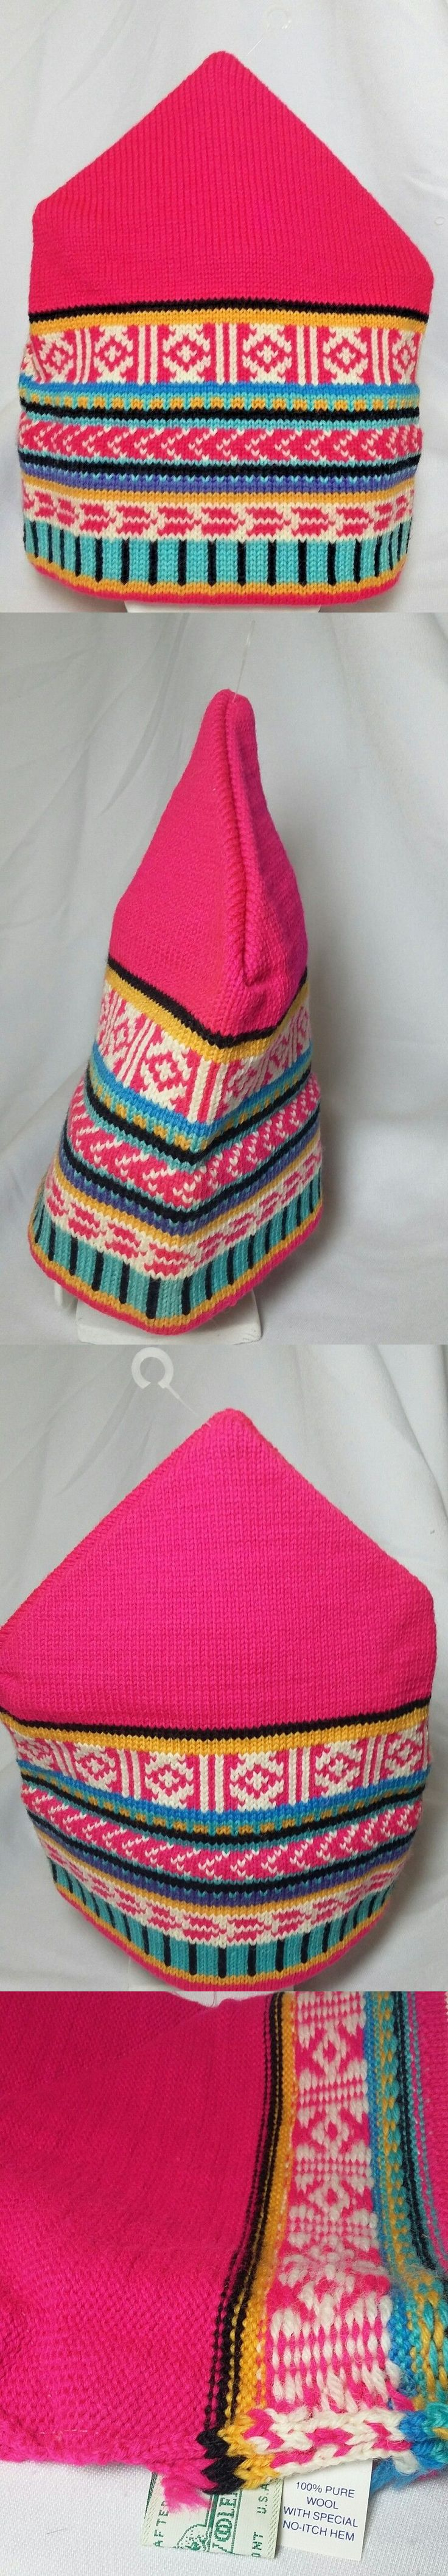 Hats and Headwear 62175: New Stowe Woolens Knit Ski Hat Worsted Wool Pink Print Made In Vermont -> BUY IT NOW ONLY: $39.95 on eBay!